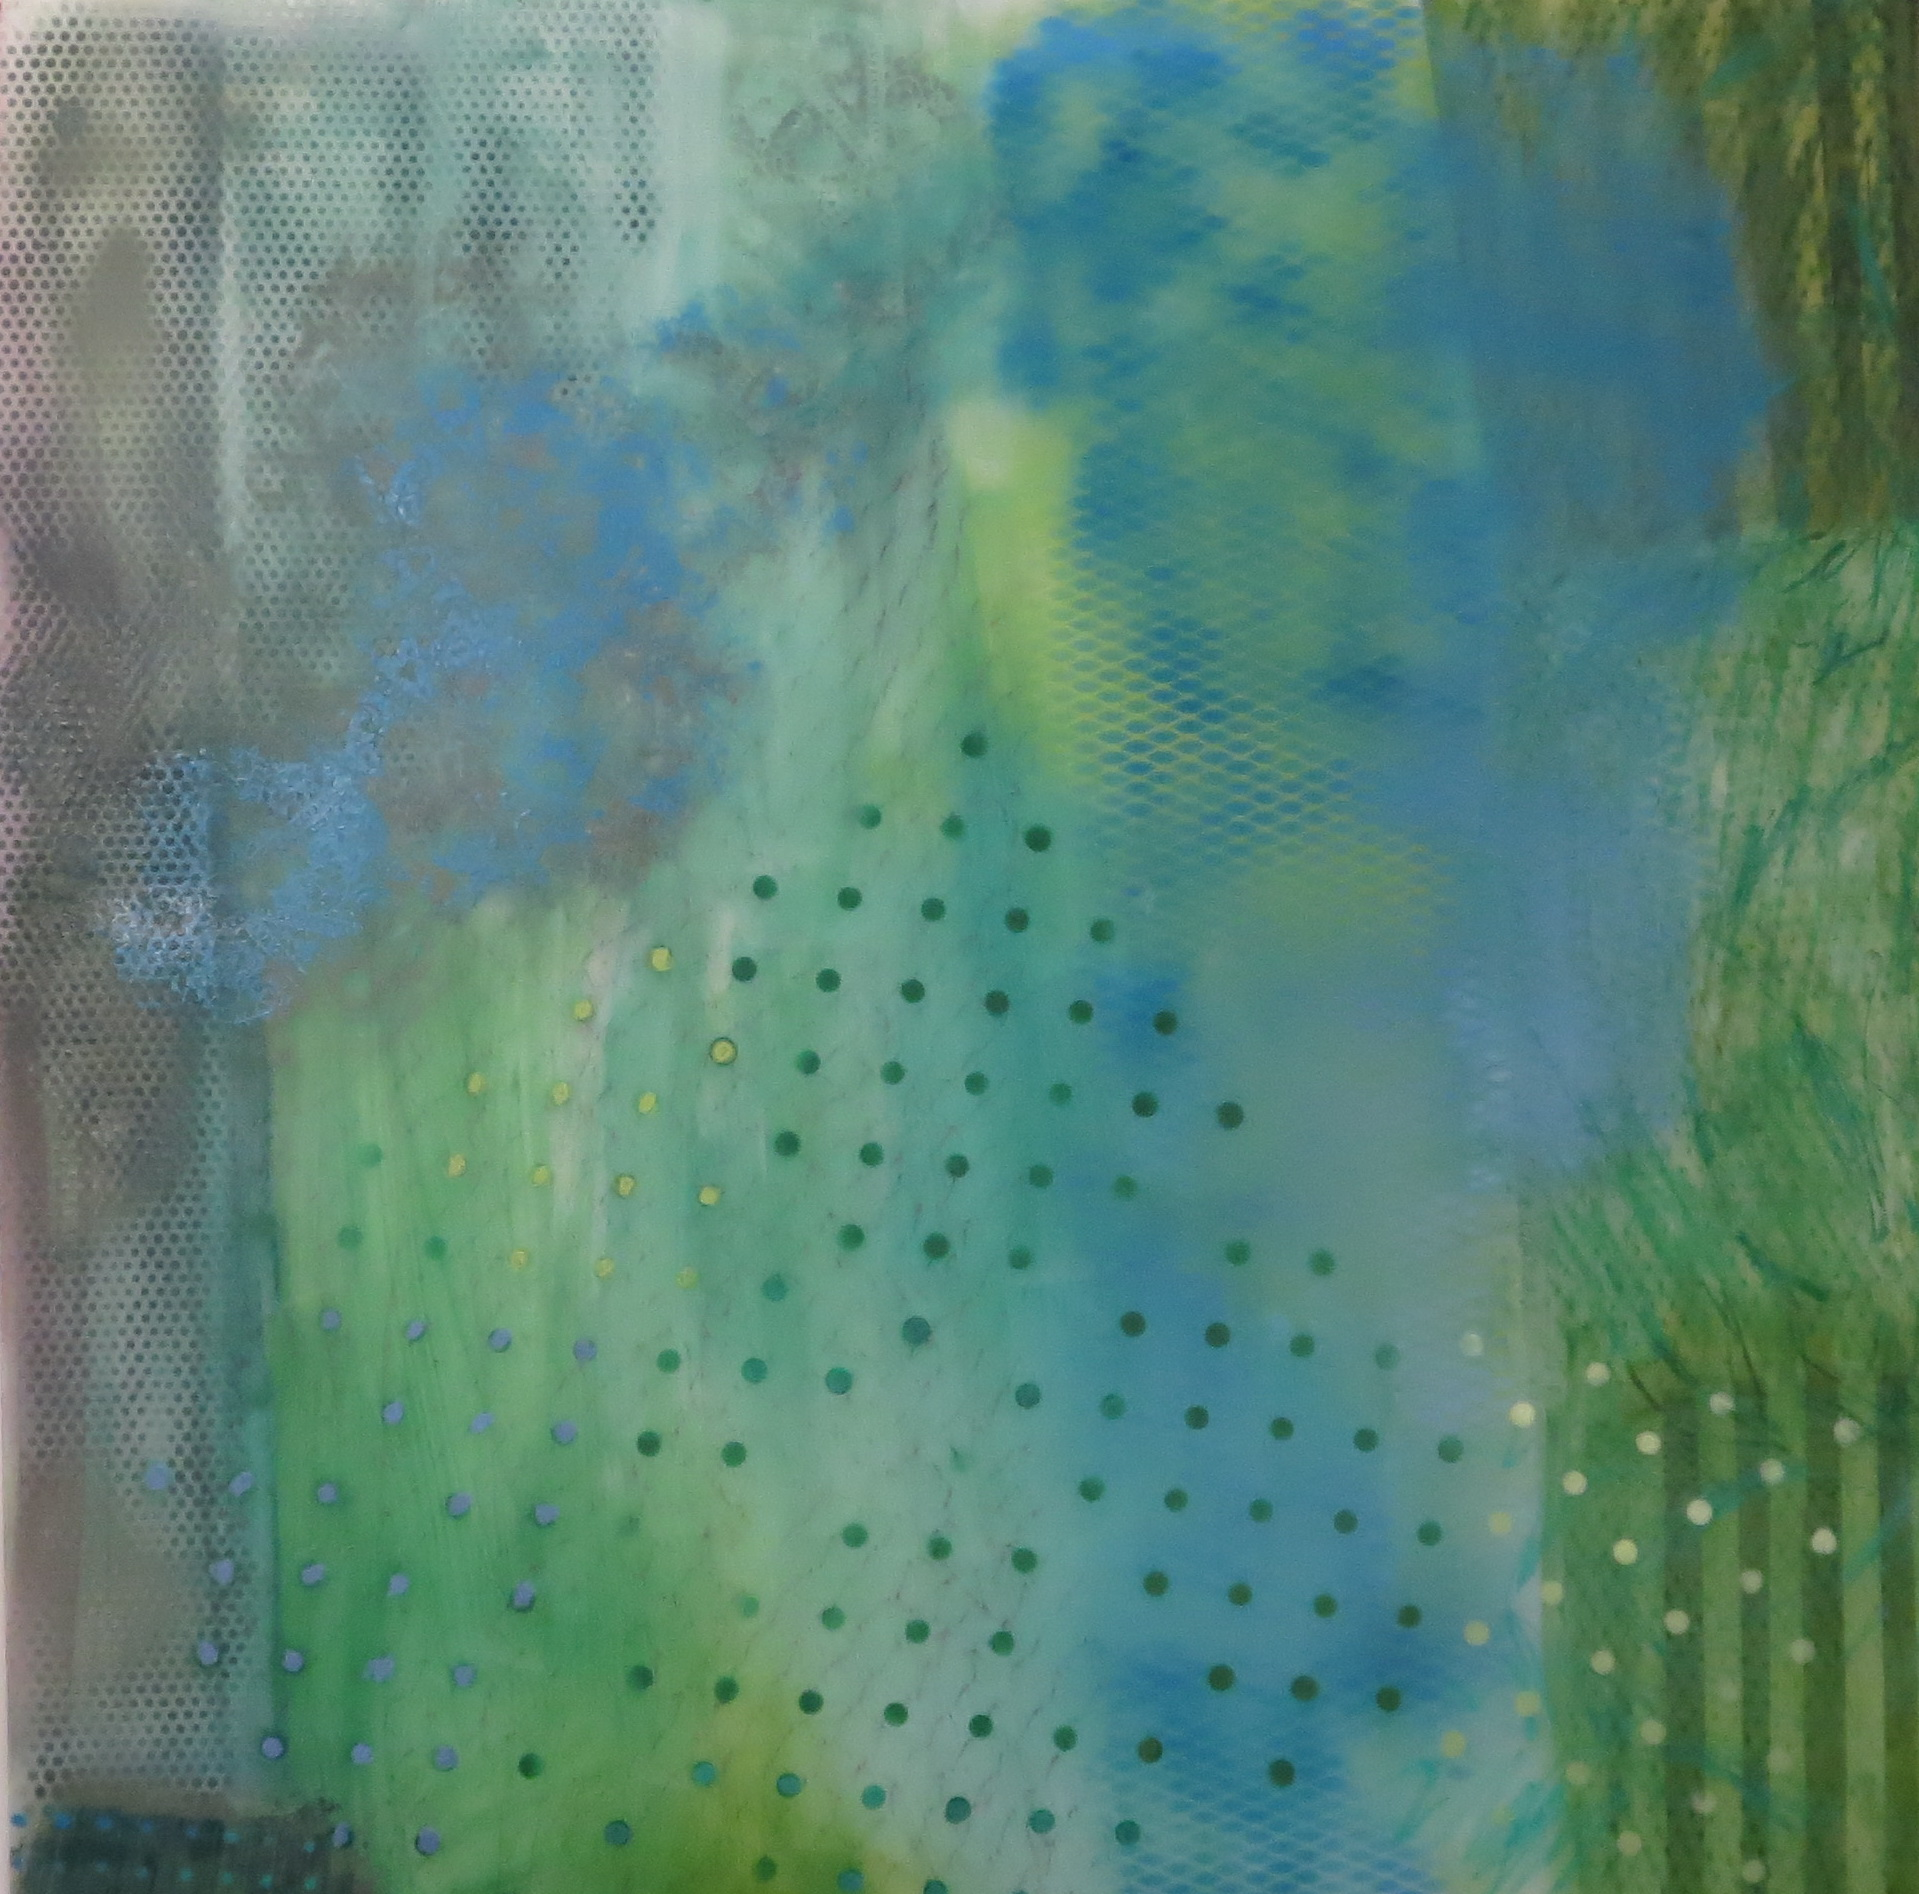 11. Earth Scape in Greened grids oil mixed media on lexan 48 x 48 inches.jpg